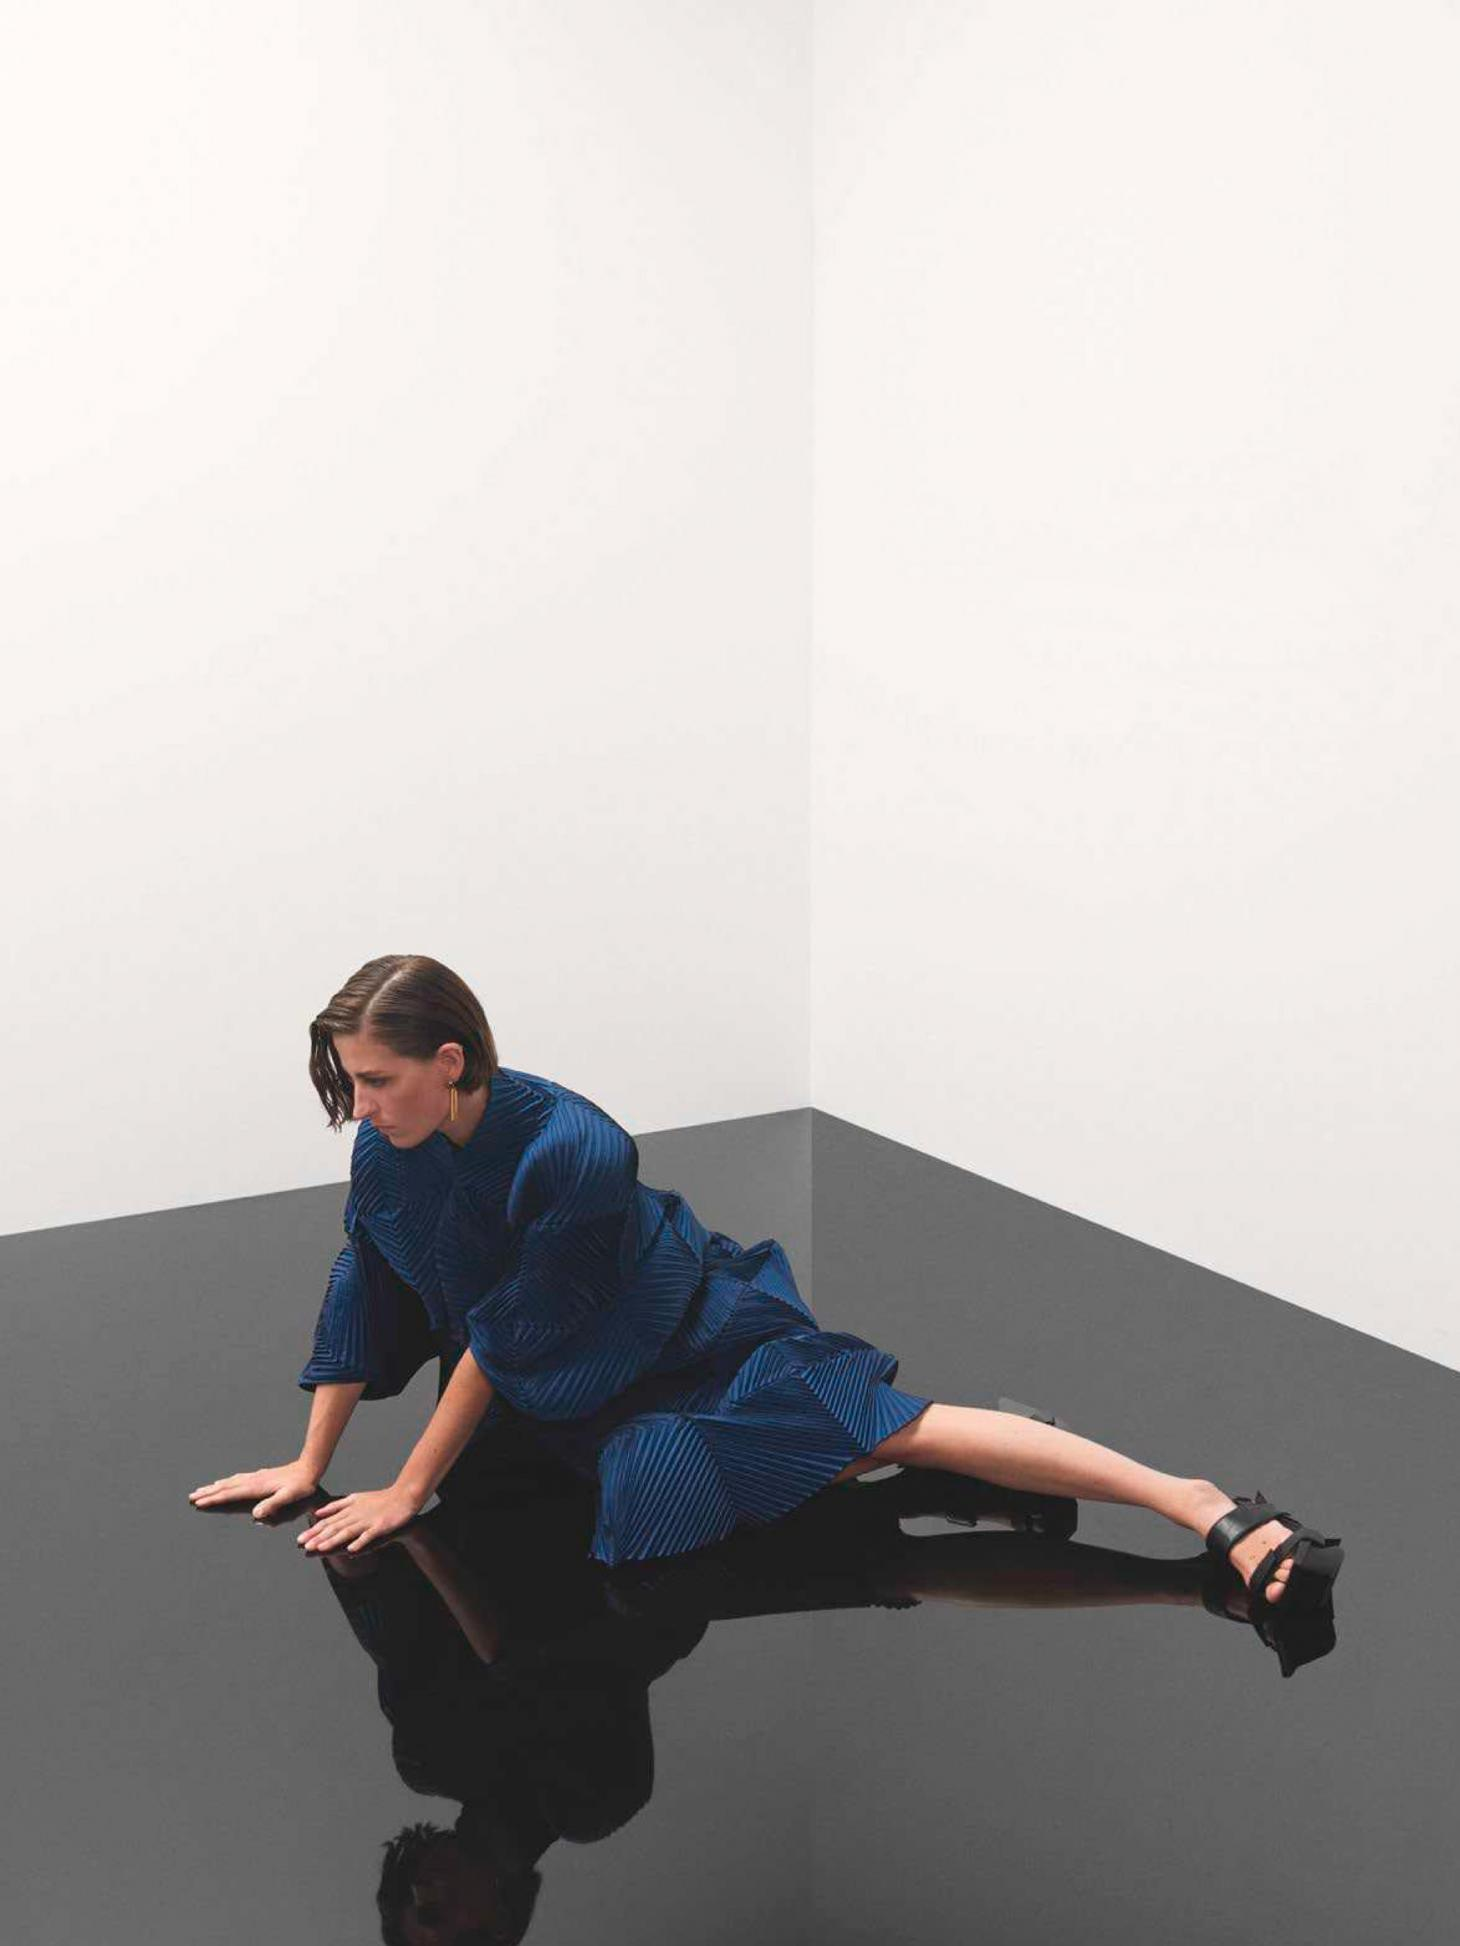 Image of woman in blue Issey Miyake pleats dress on black shiny floor